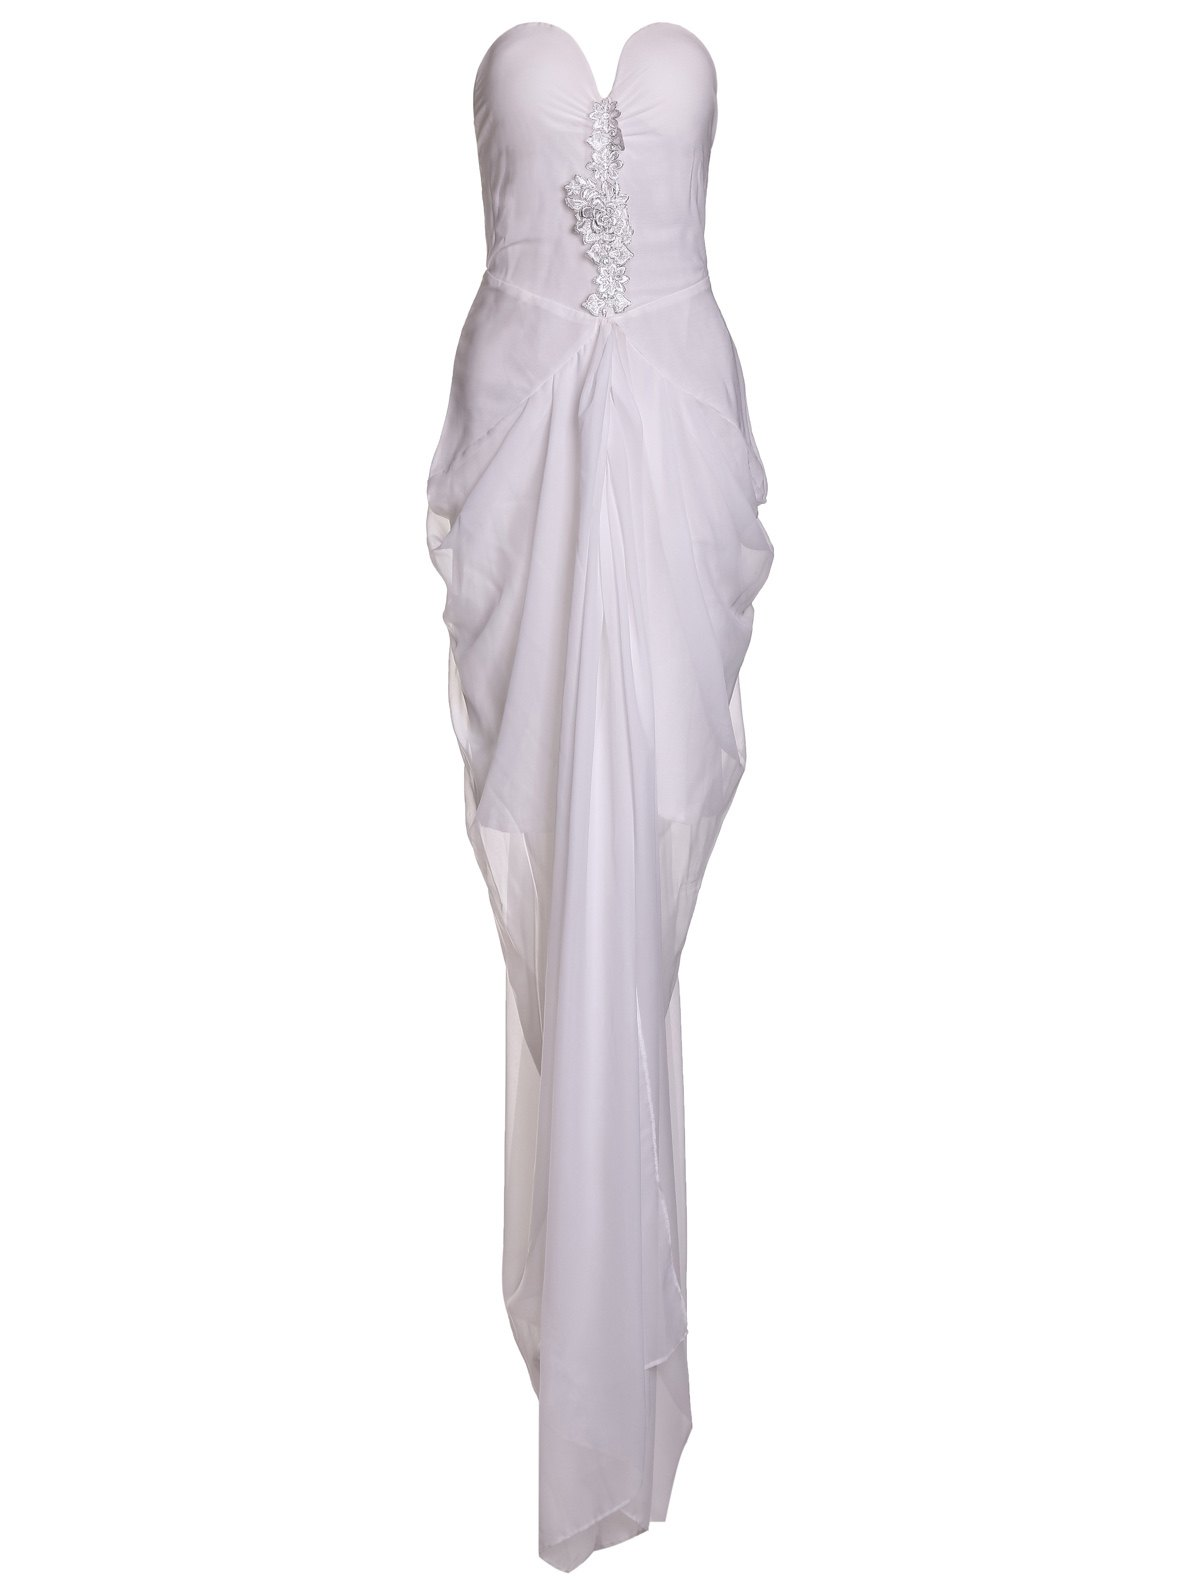 Charming White Strapless Irregular Pleated High Slit Chiffon Maxi Dress For Women - WHITE S